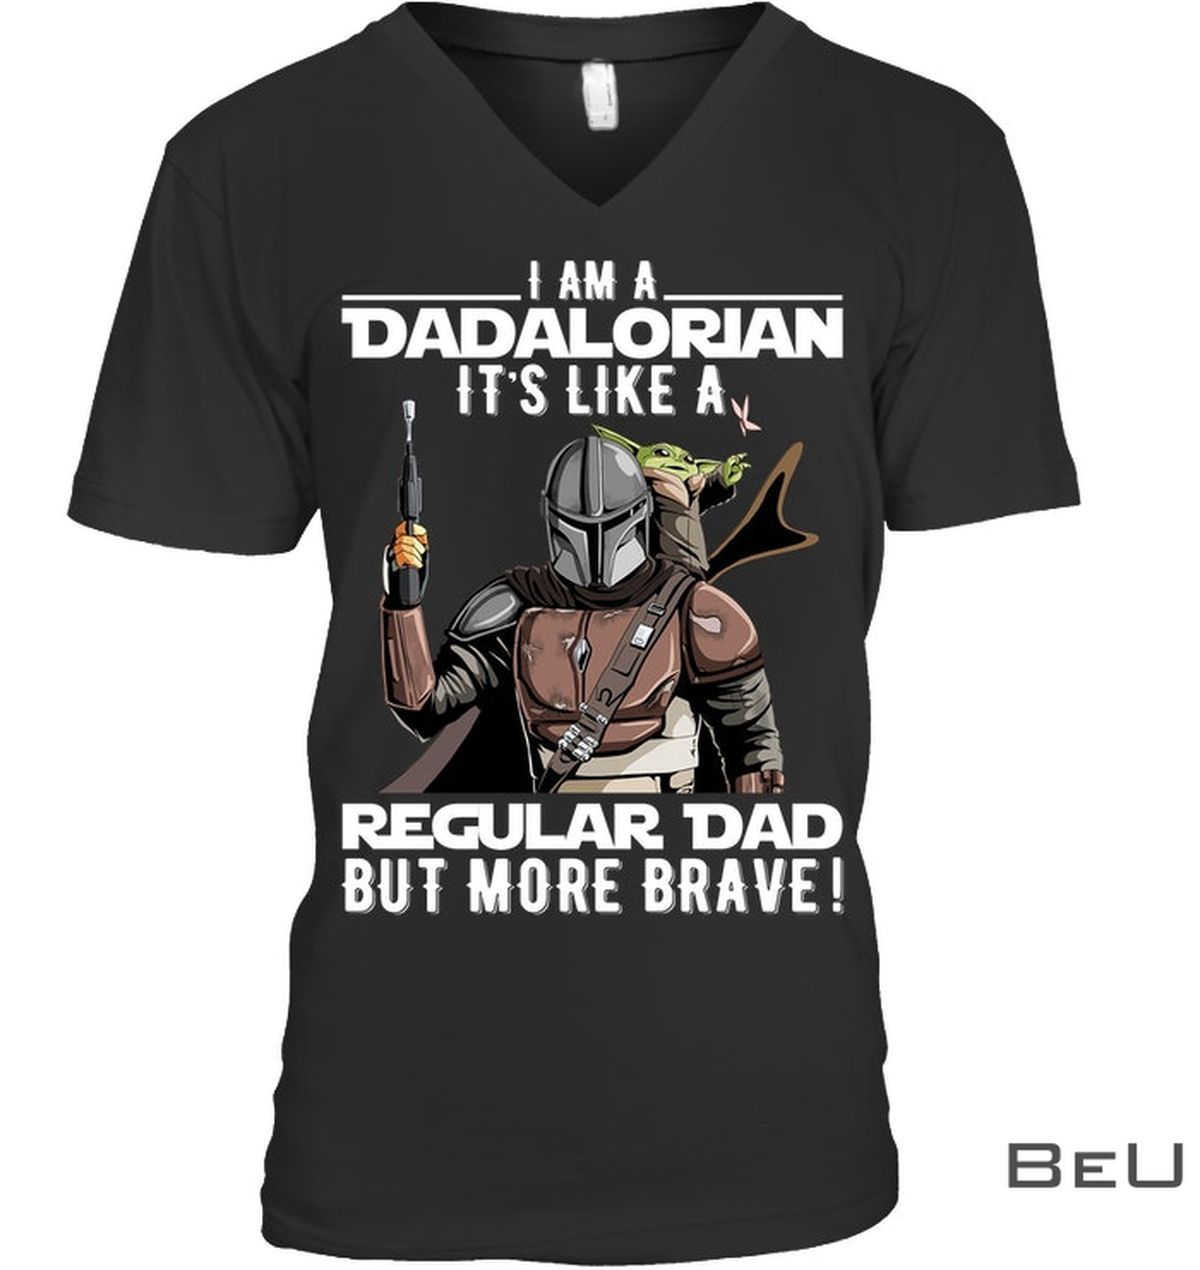 I Am A Dadalorian It's Like A Regular Dad But More Brave Shirtx